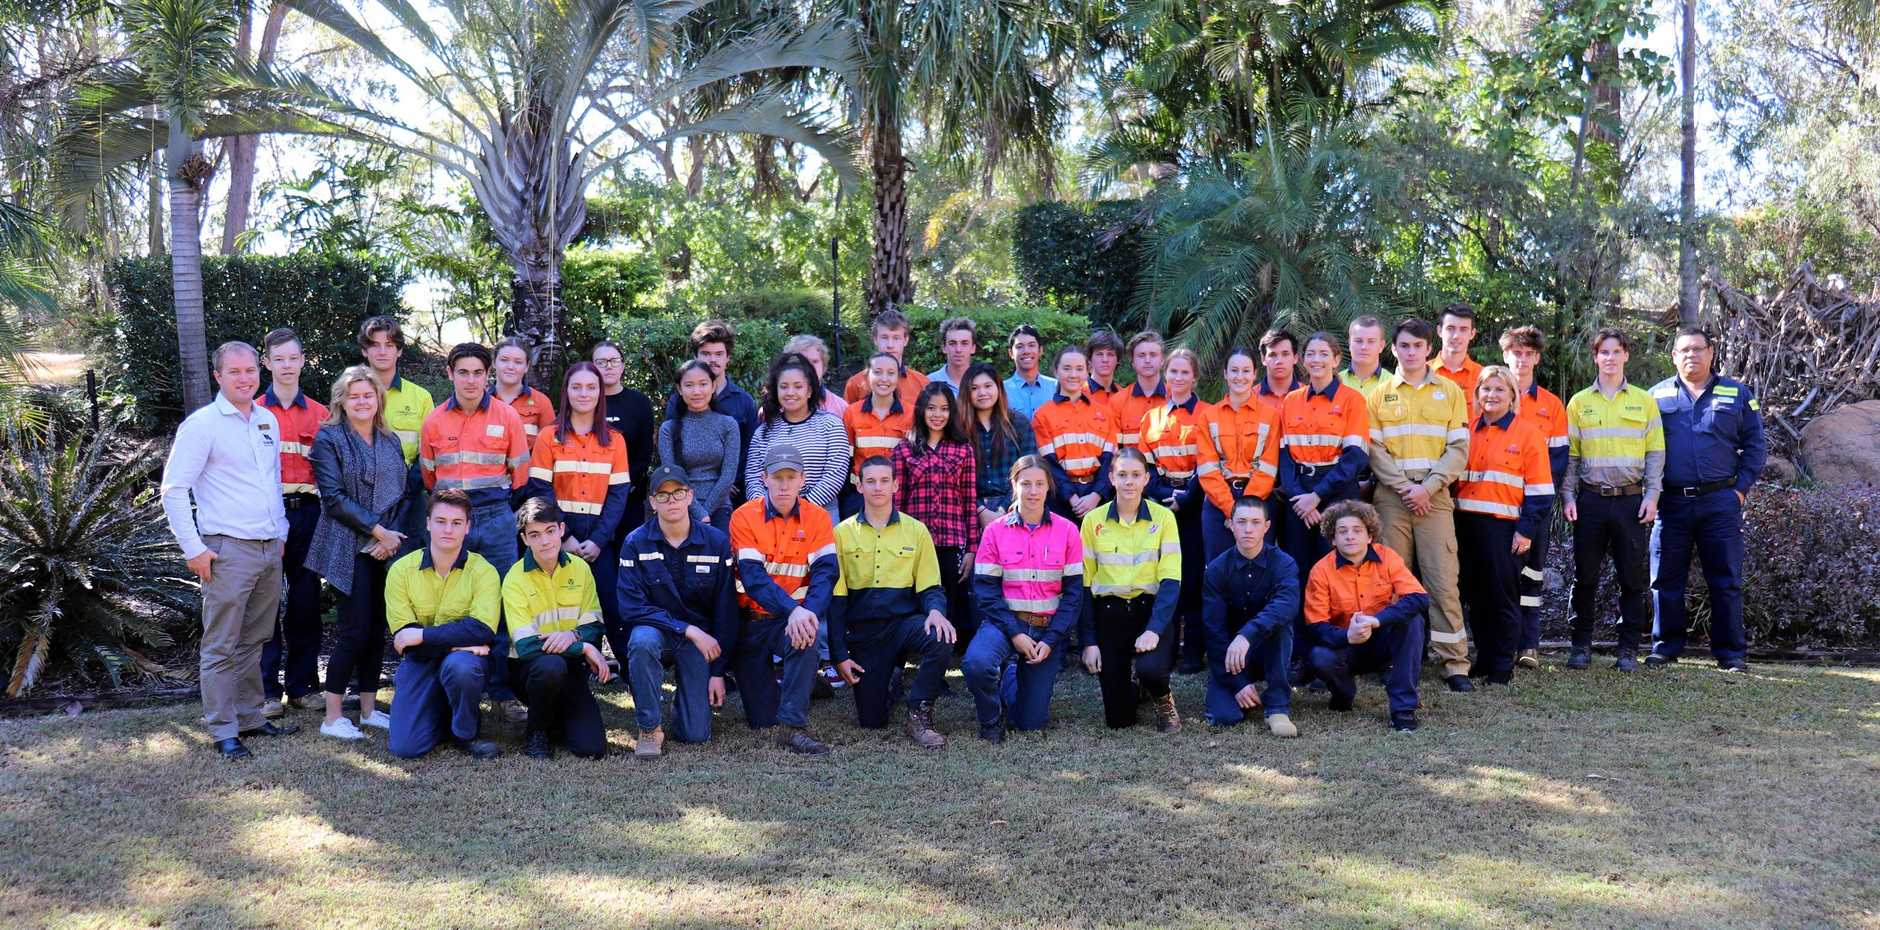 QAL has opened their doors to more than 60 high school students from around Gladstone.